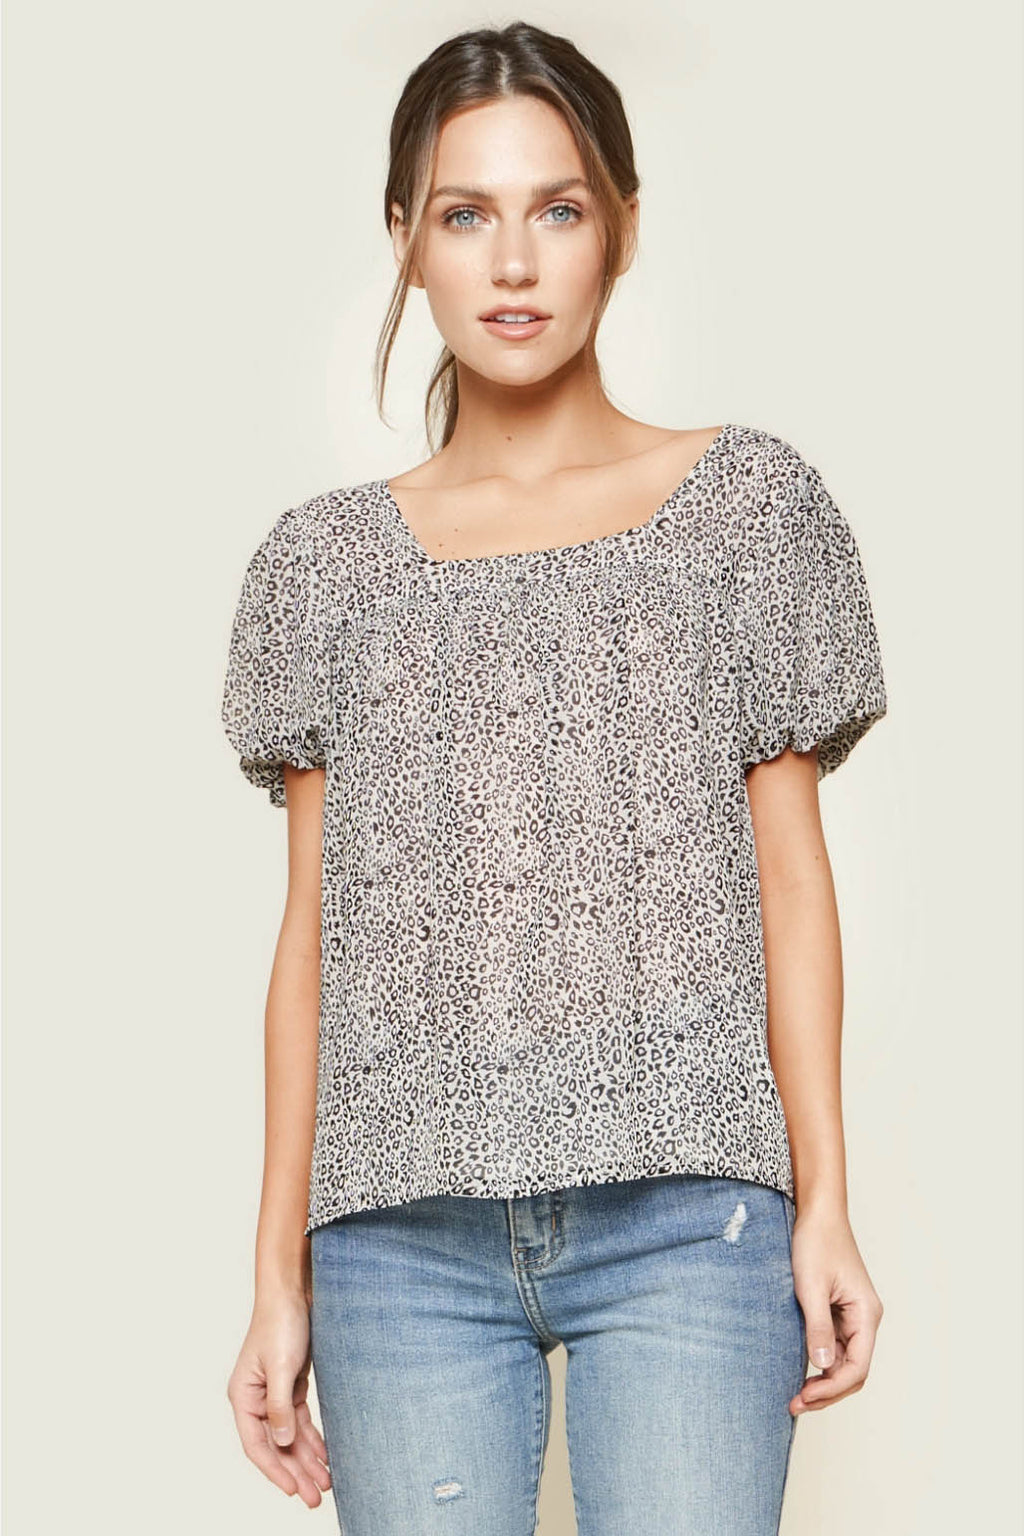 Purrfect Puff Sleeve Top